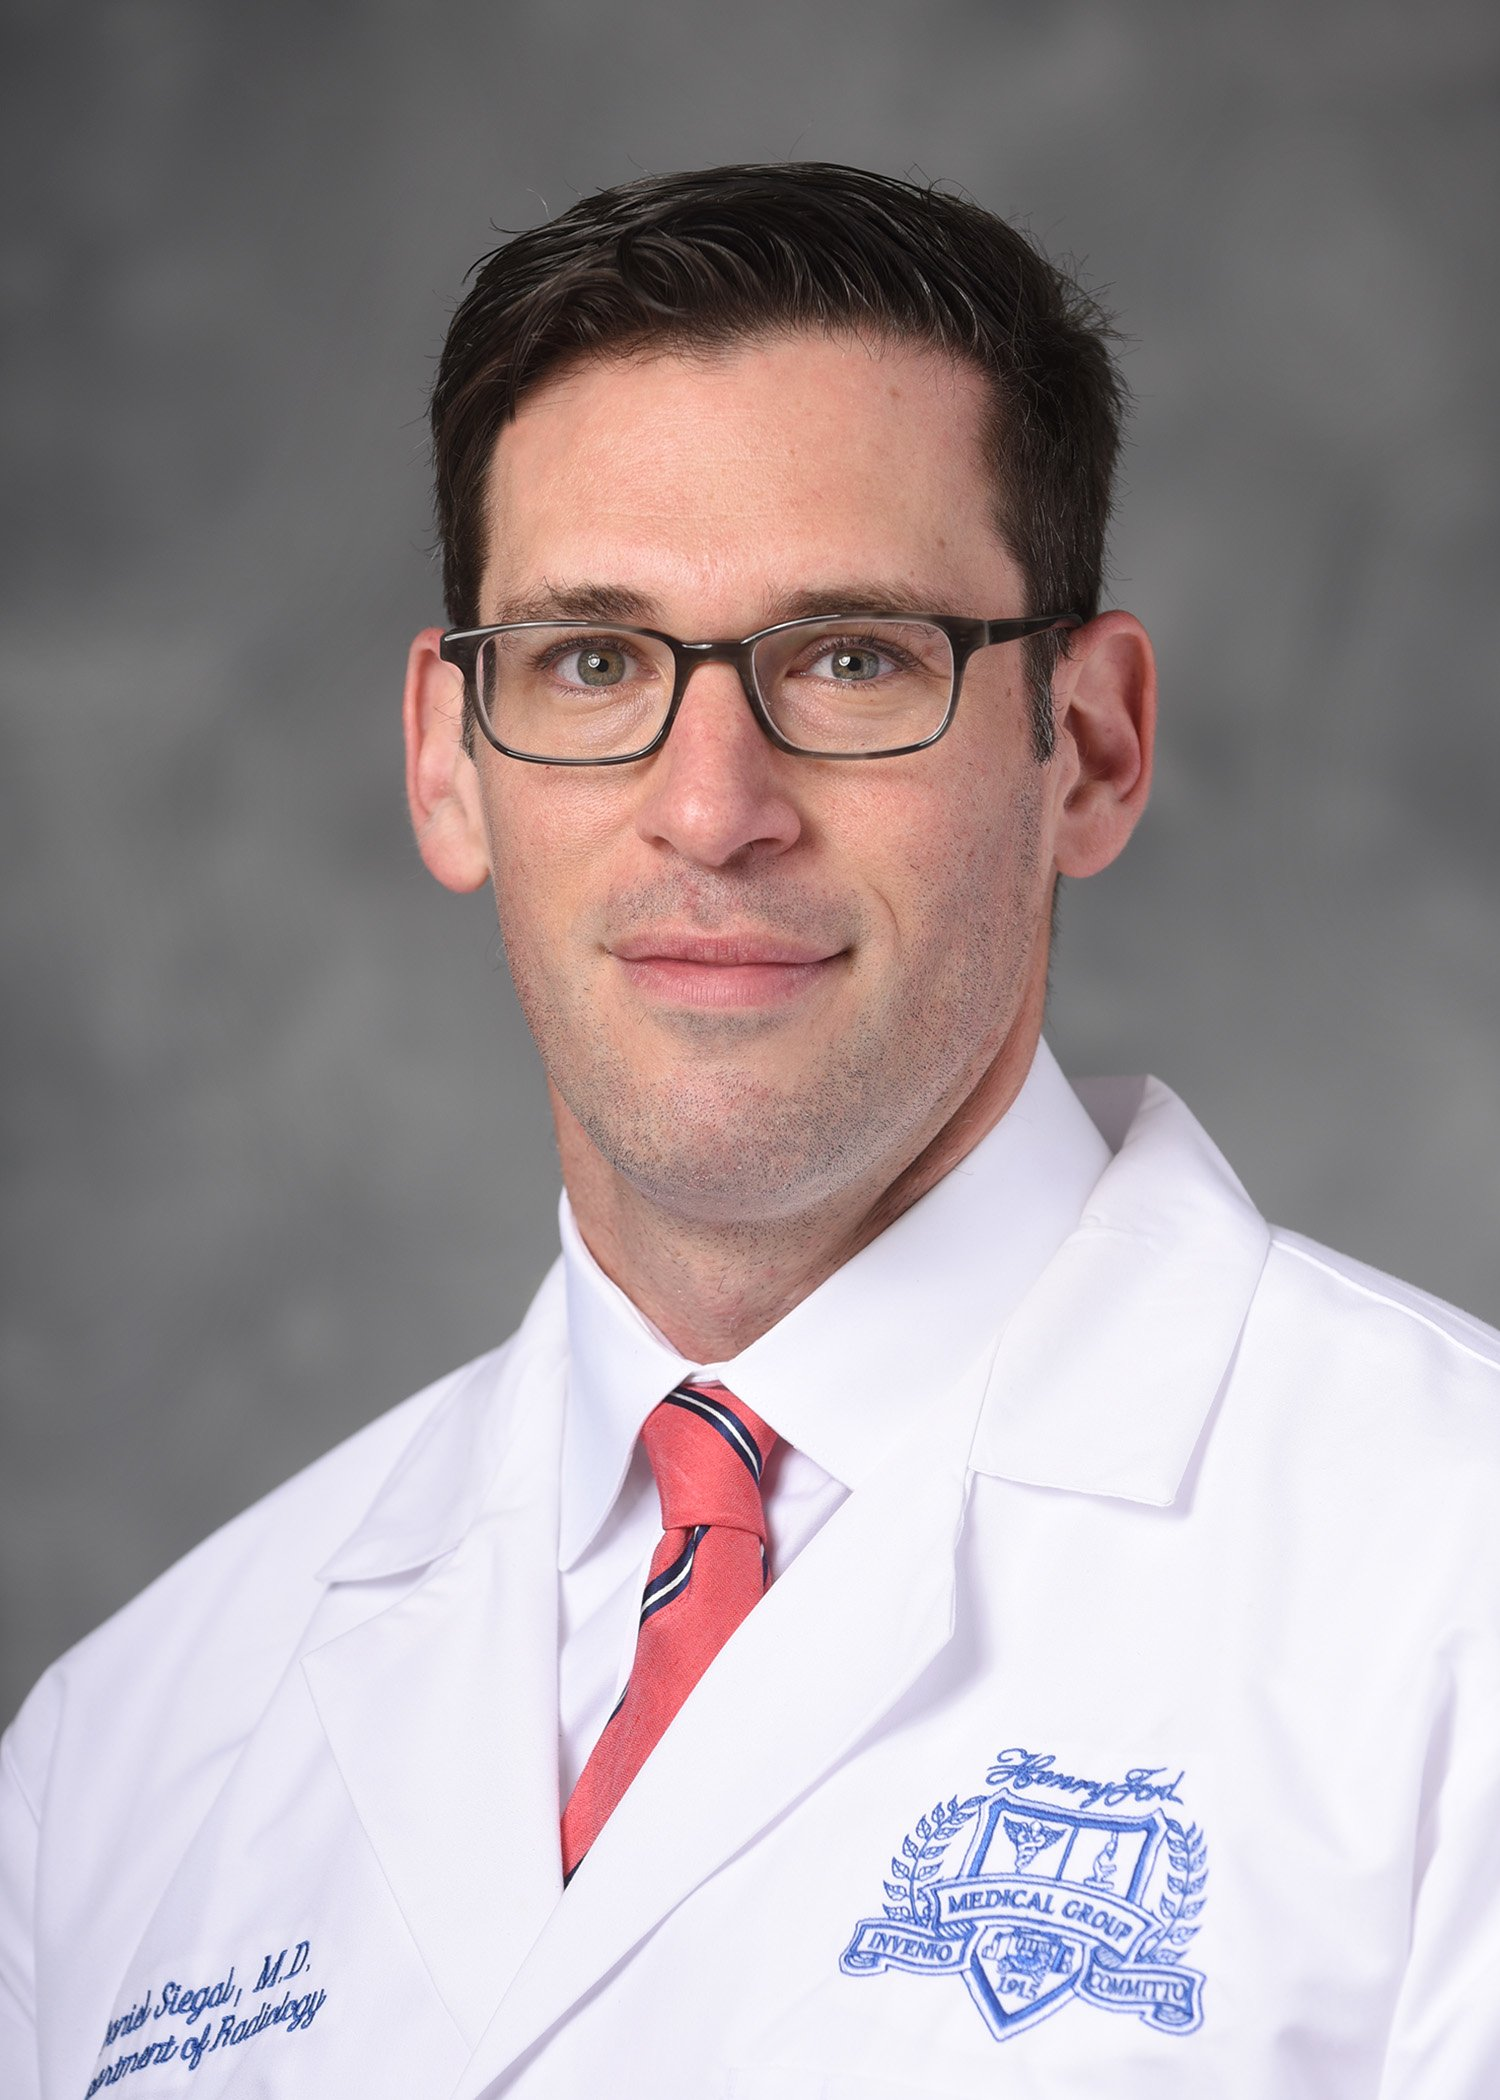 Daniel Siegal MD